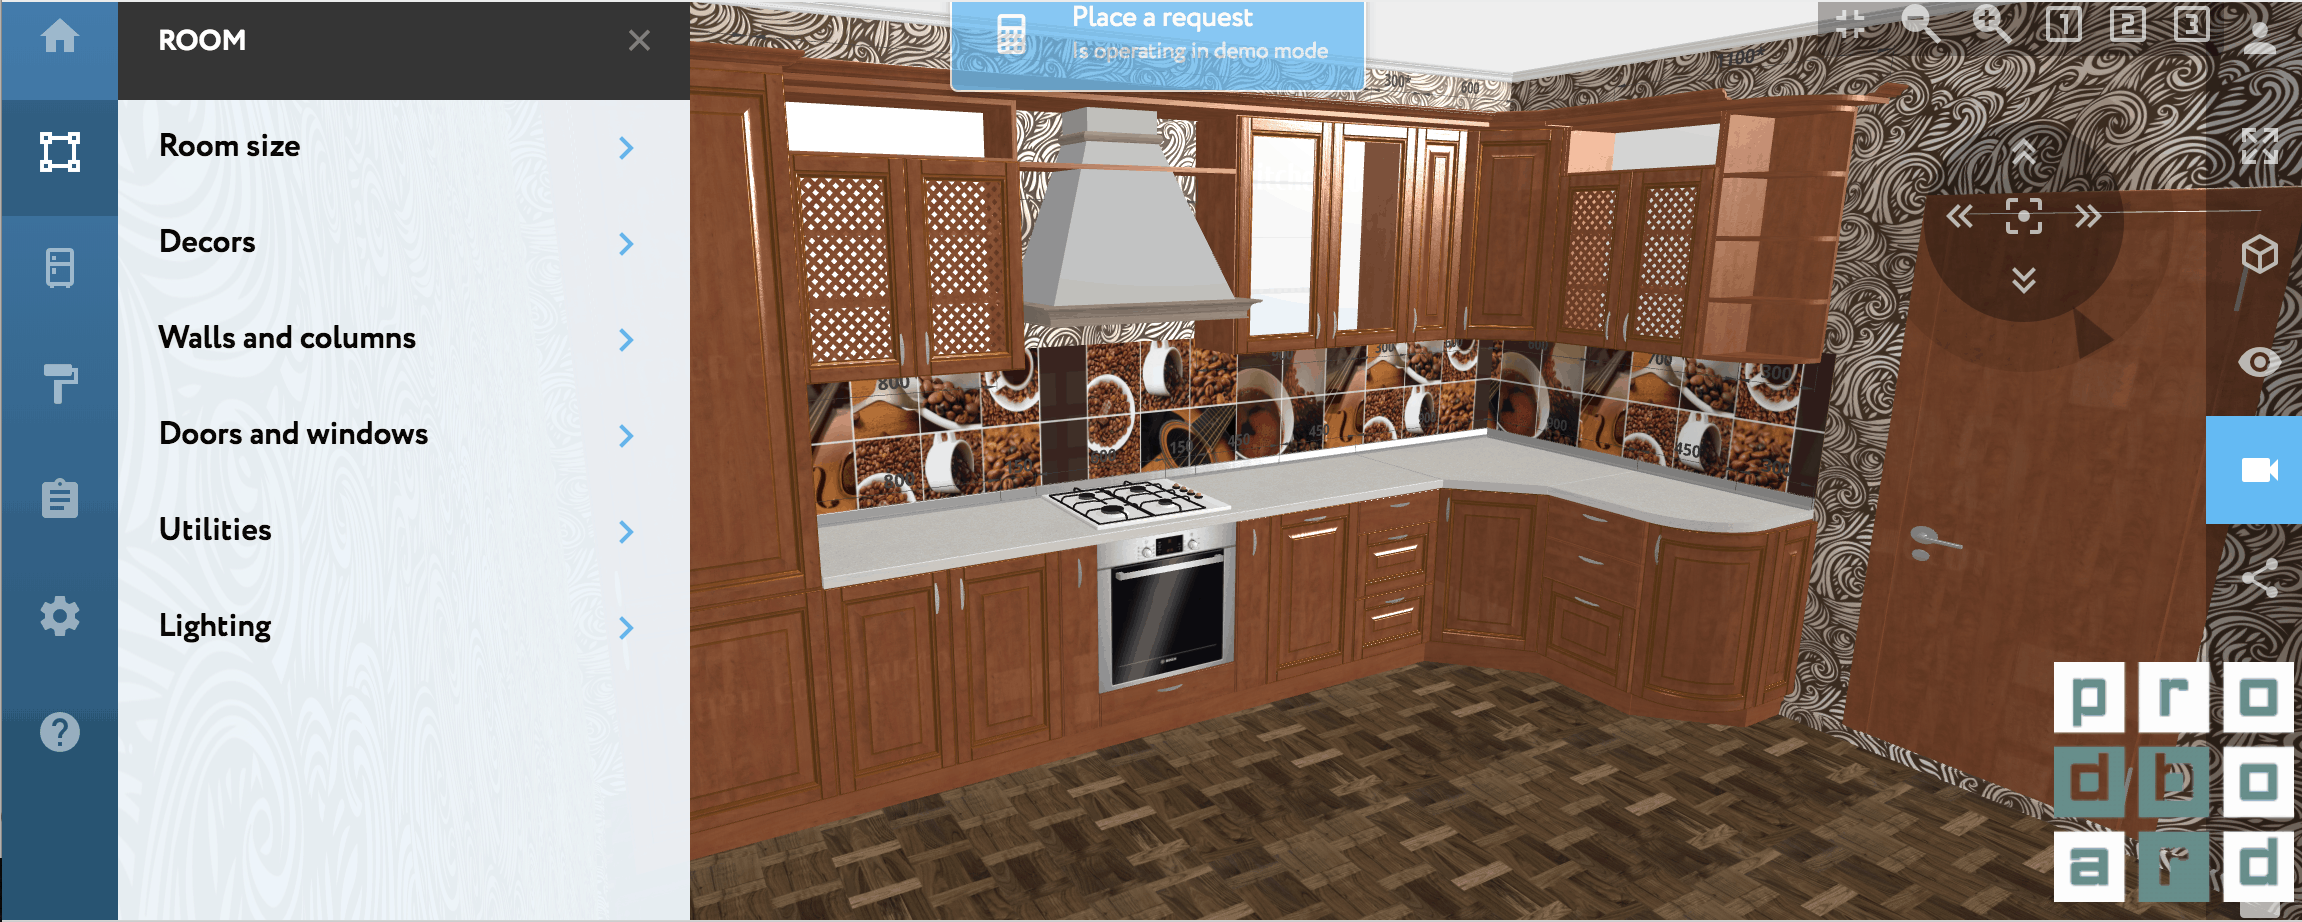 16 Best Online Kitchen Design Software Options in 2018 (Free & Paid)